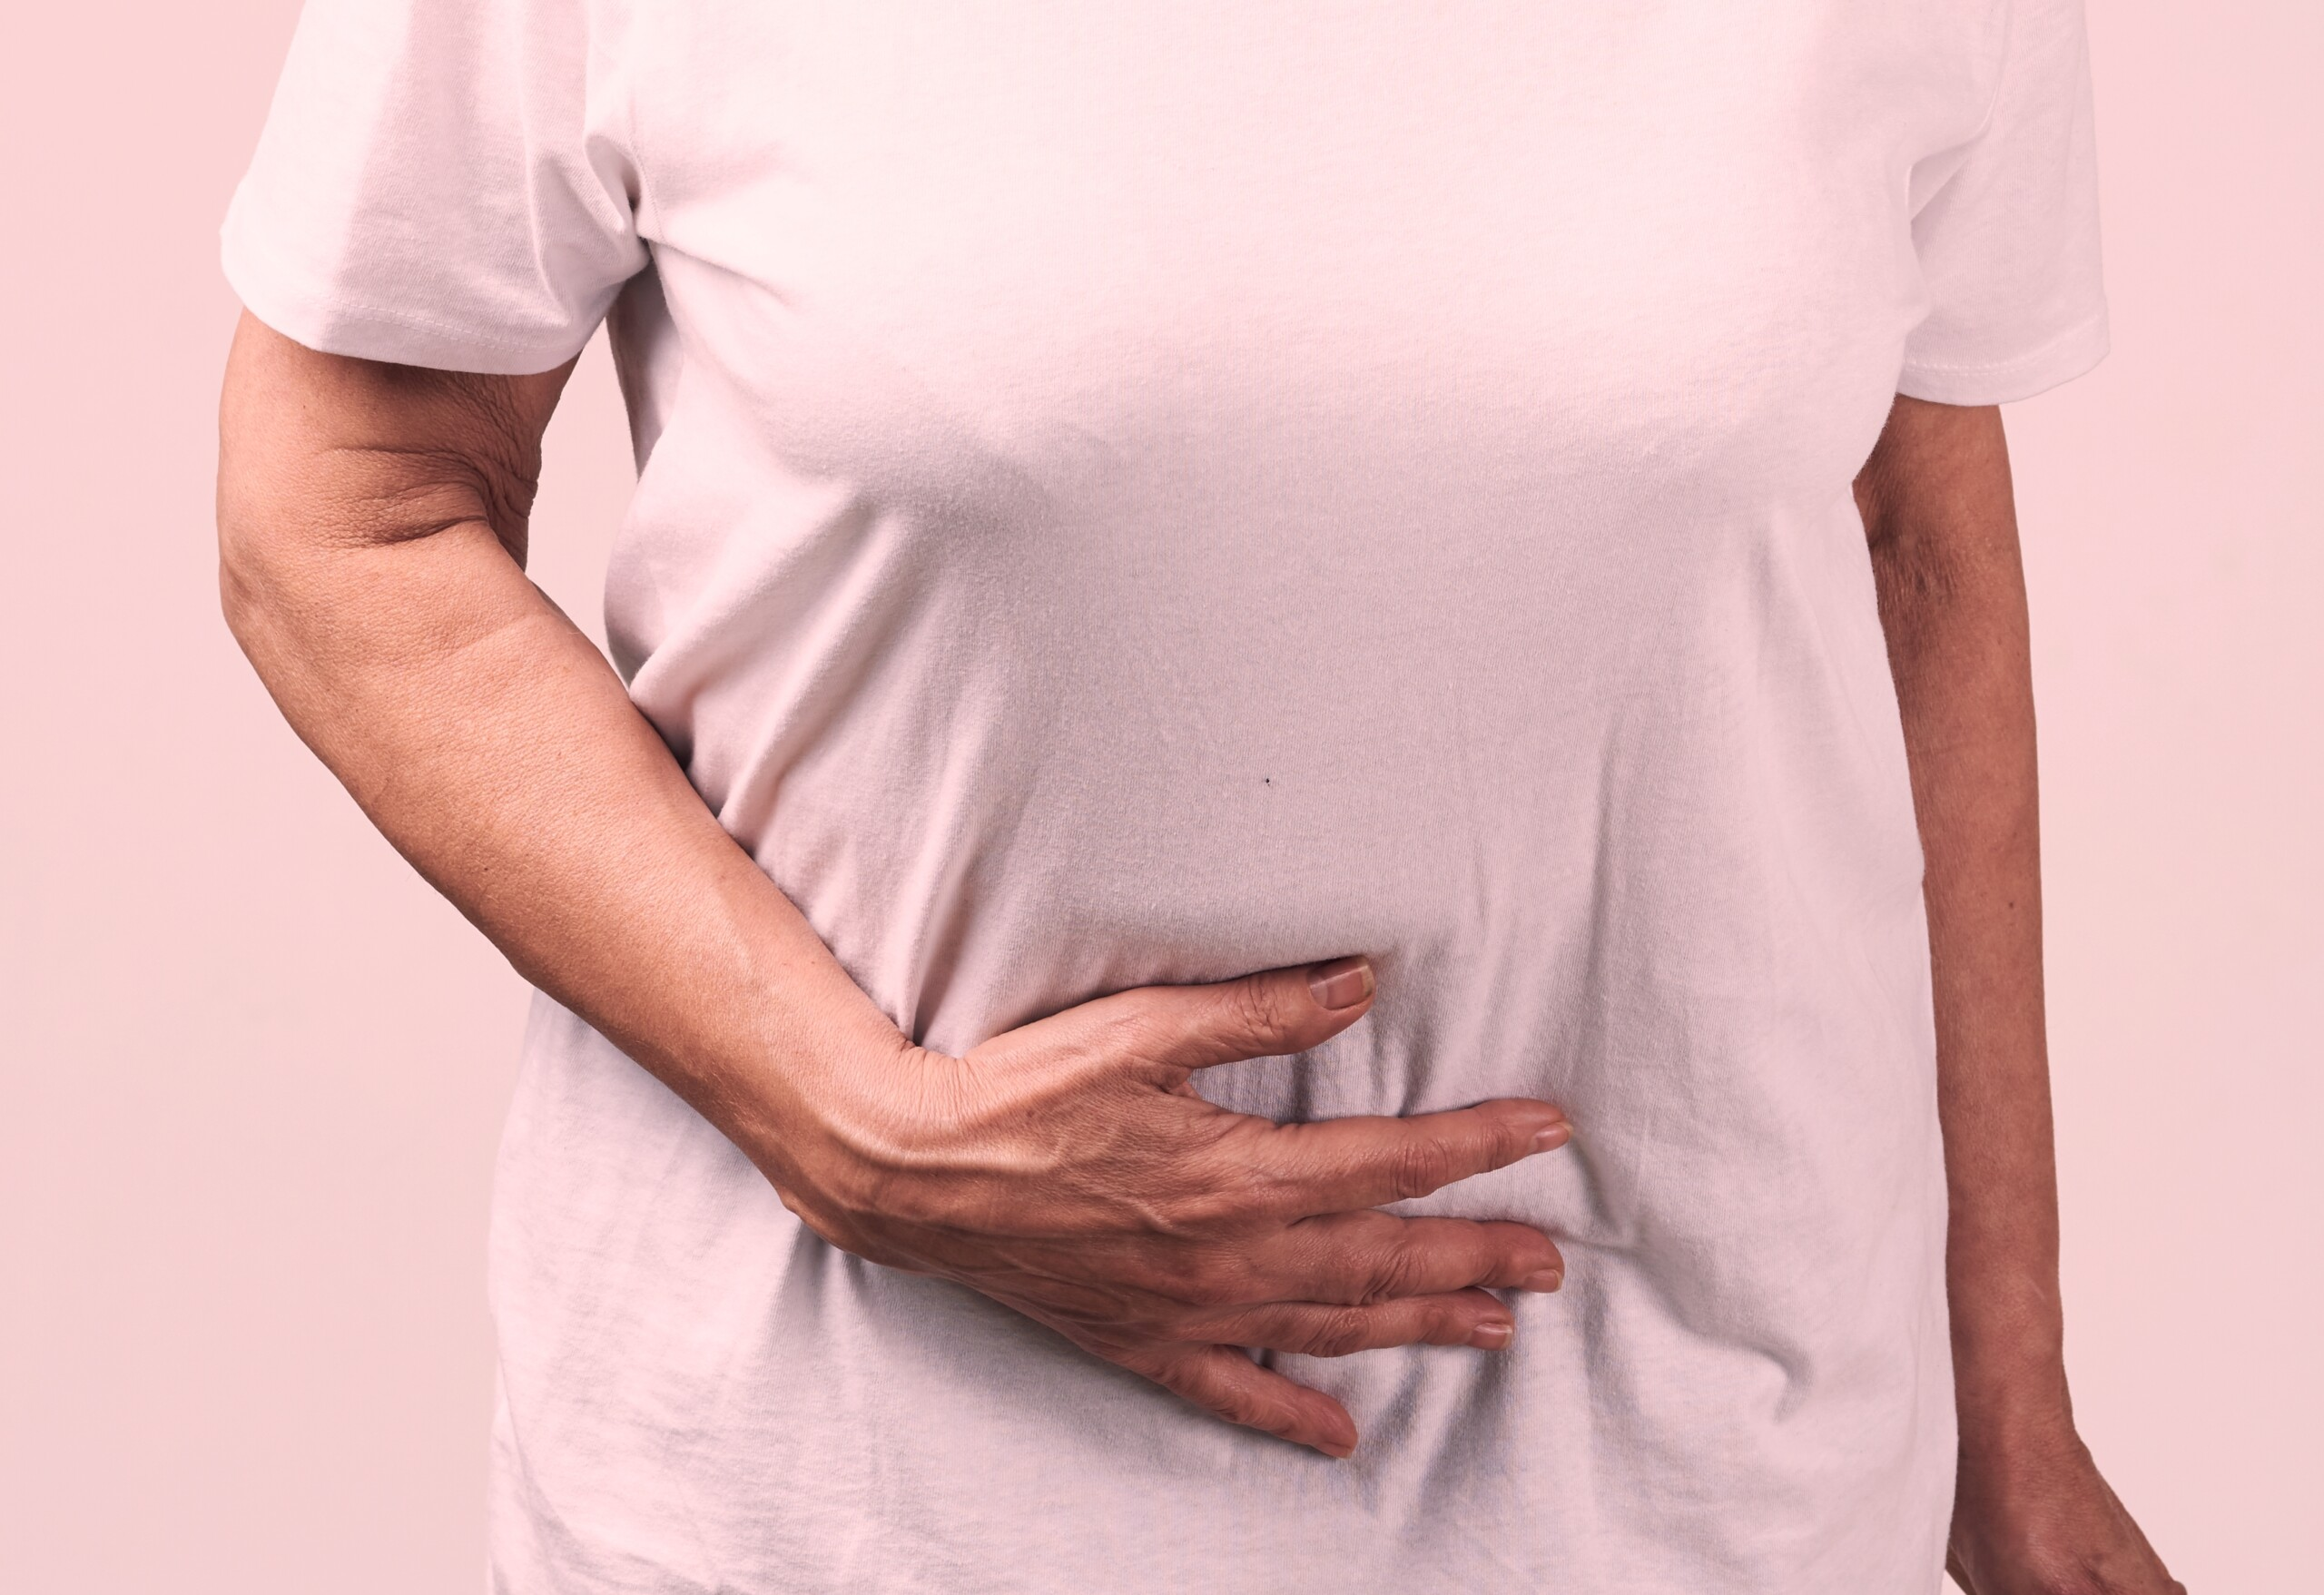 IBS Waking You Up At Night: Causes and Solutions